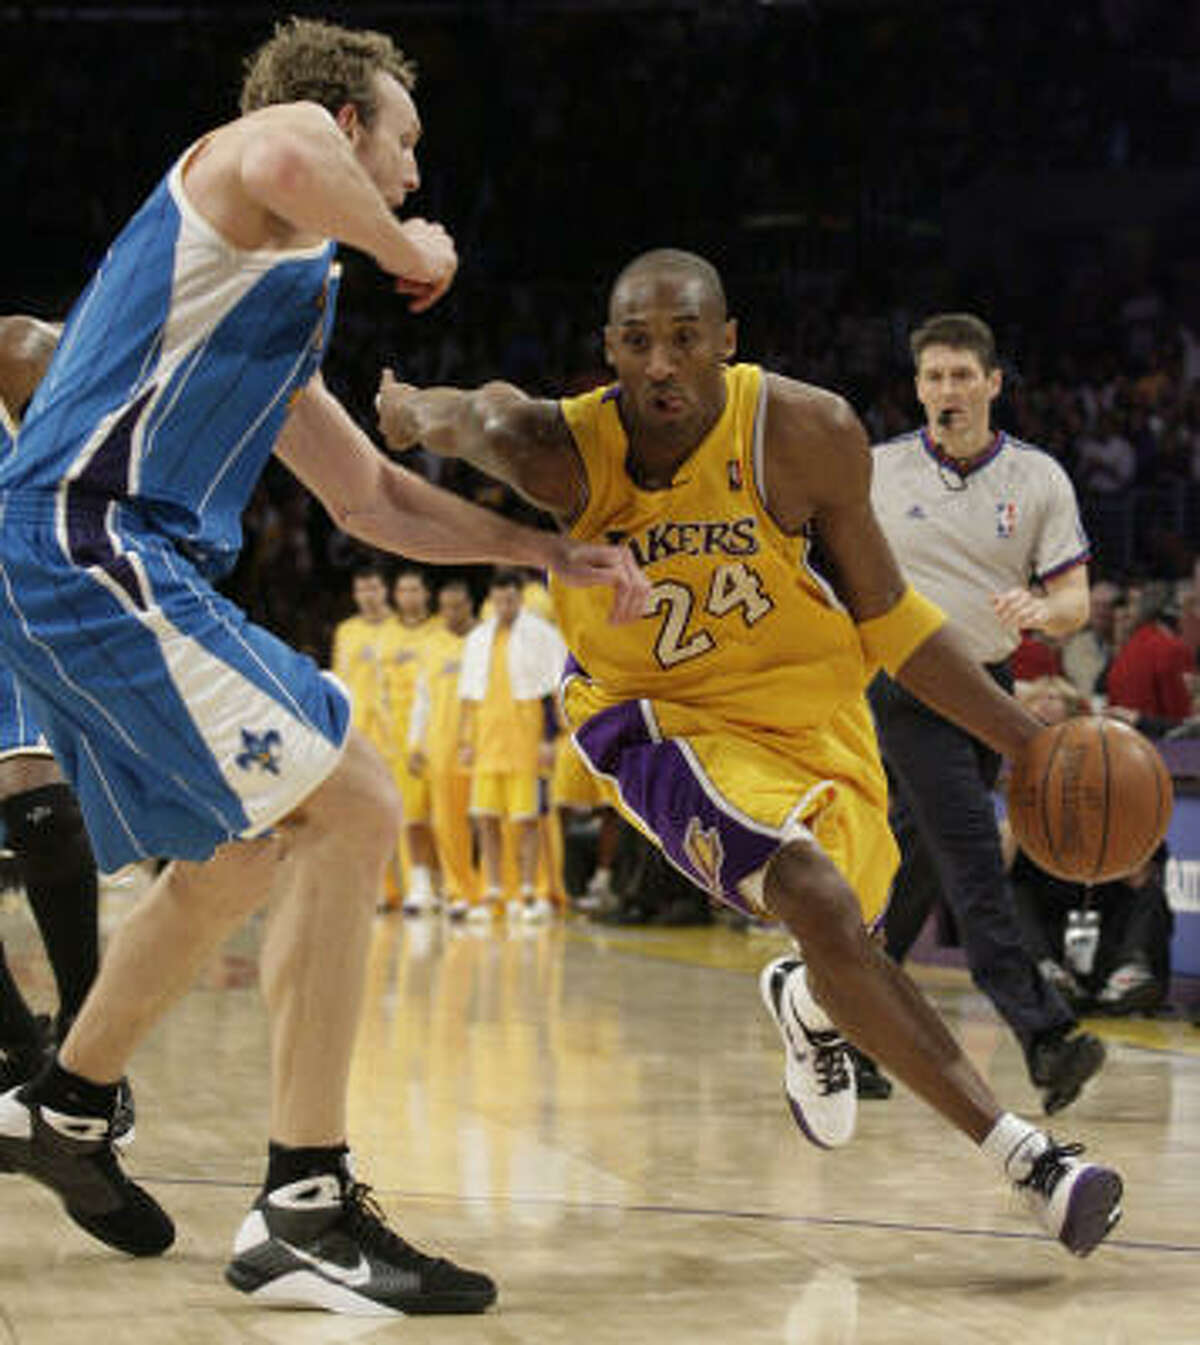 1 - LOS ANGELES LAKERS - (Last wk: 1) - 46-10 - Kobe and his posse are 4-0 since the All-Star break and looking like they don't even need Andrew Bynum. Actually, it's Chris Mihm they didn't need, shipping him to Memphis. They're watching Bynum's progress from his most recent knee injury to know if they'll really be the favorites heading into the playoffs.